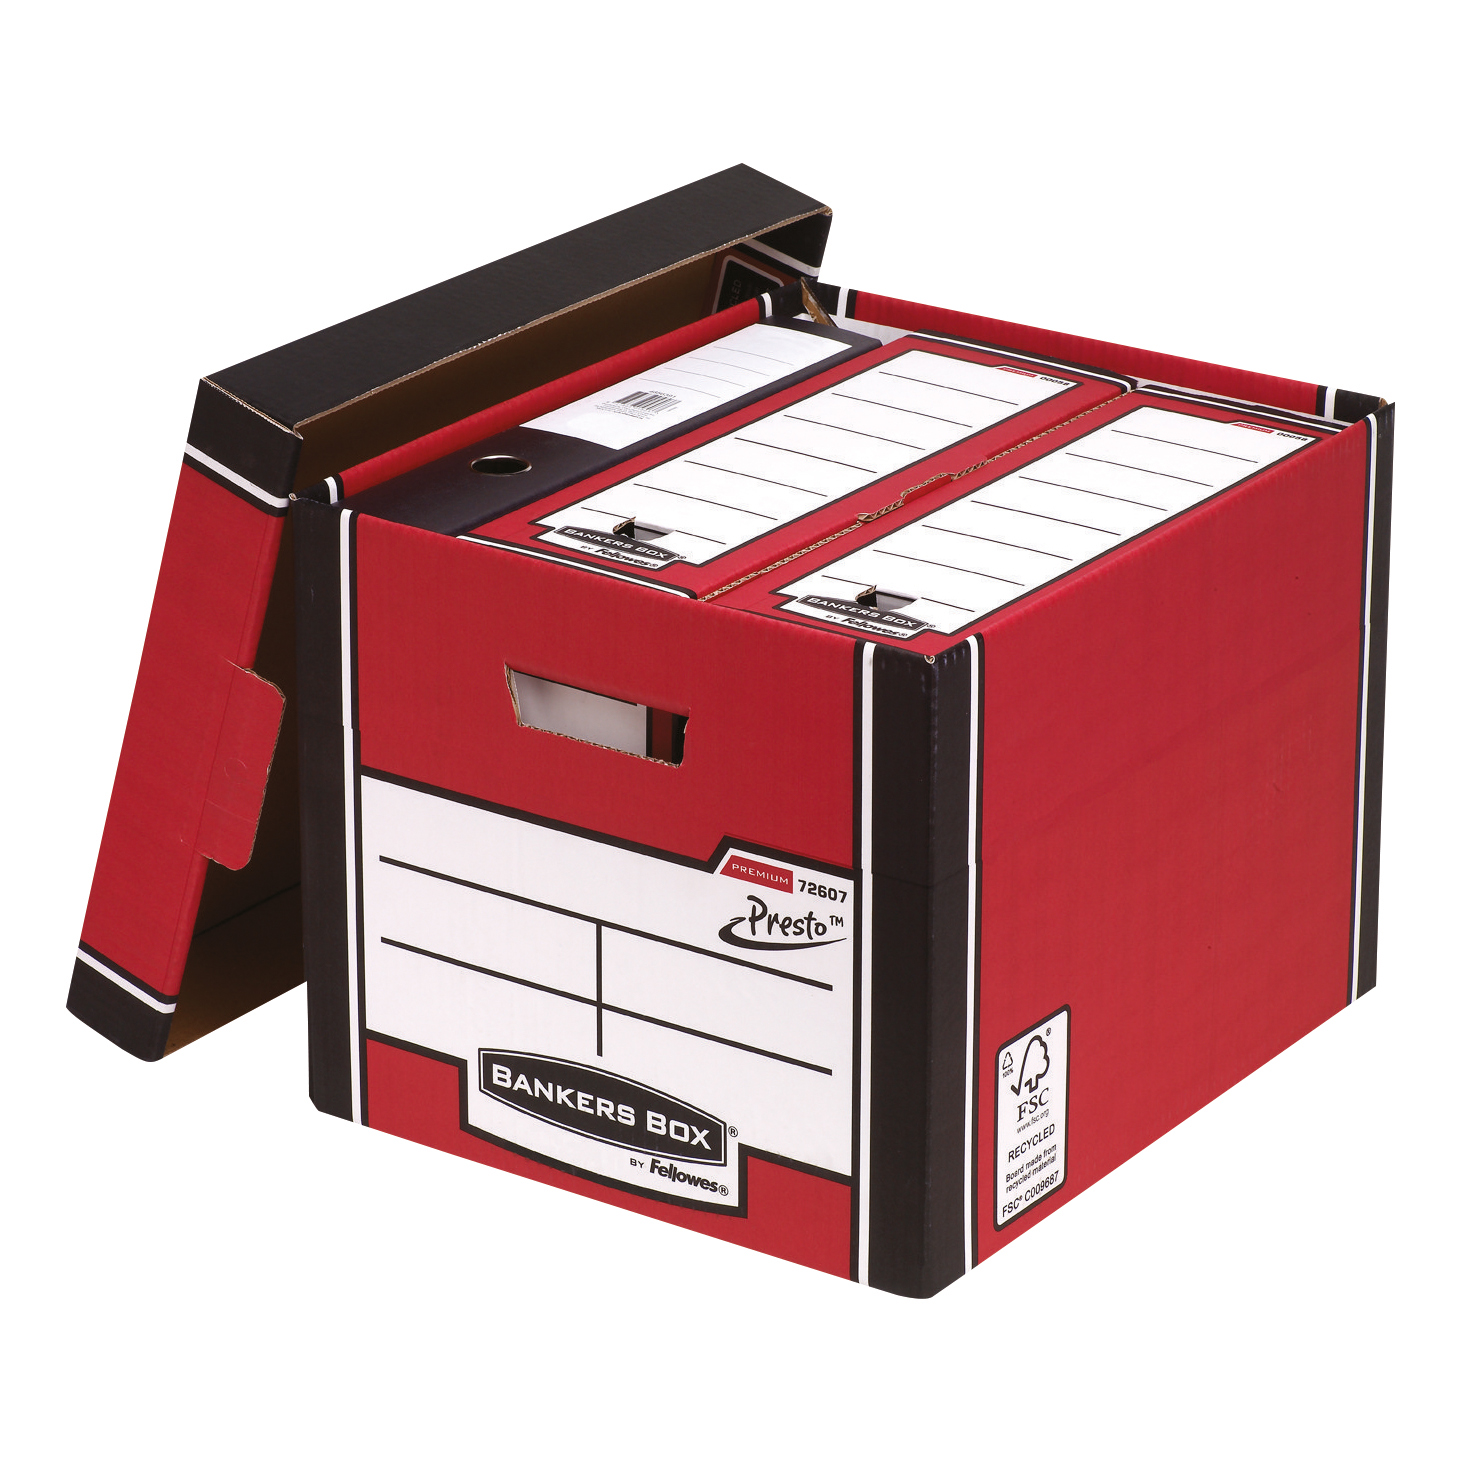 Bankers Box Premium Storage Box (Presto) Tall Red FSC Ref 7260701 [Pack 10]